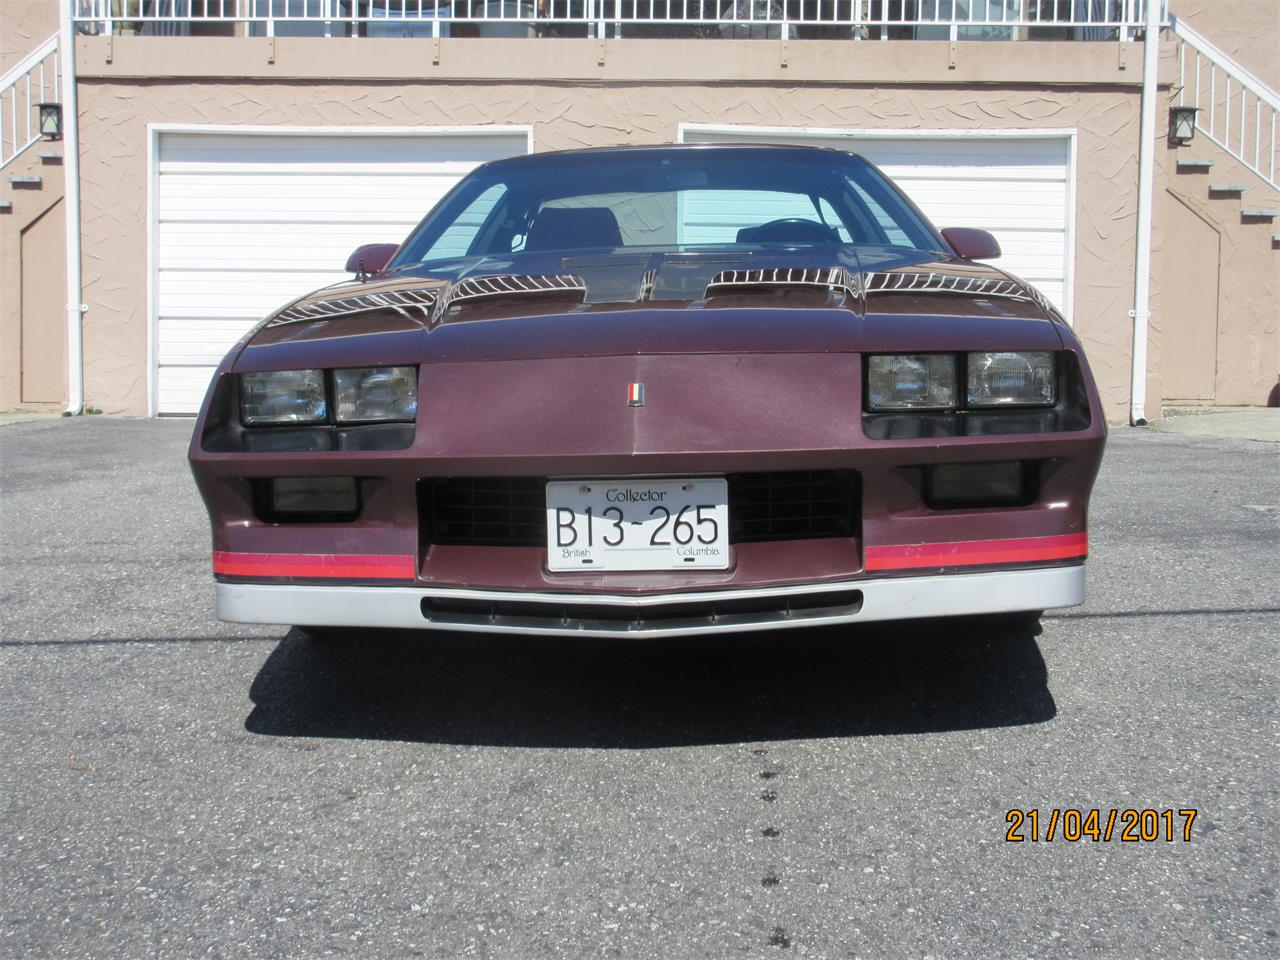 Large Picture of 1982 Camaro Z28 located in British Columbia - $15,000.00 Offered by a Private Seller - L3IA